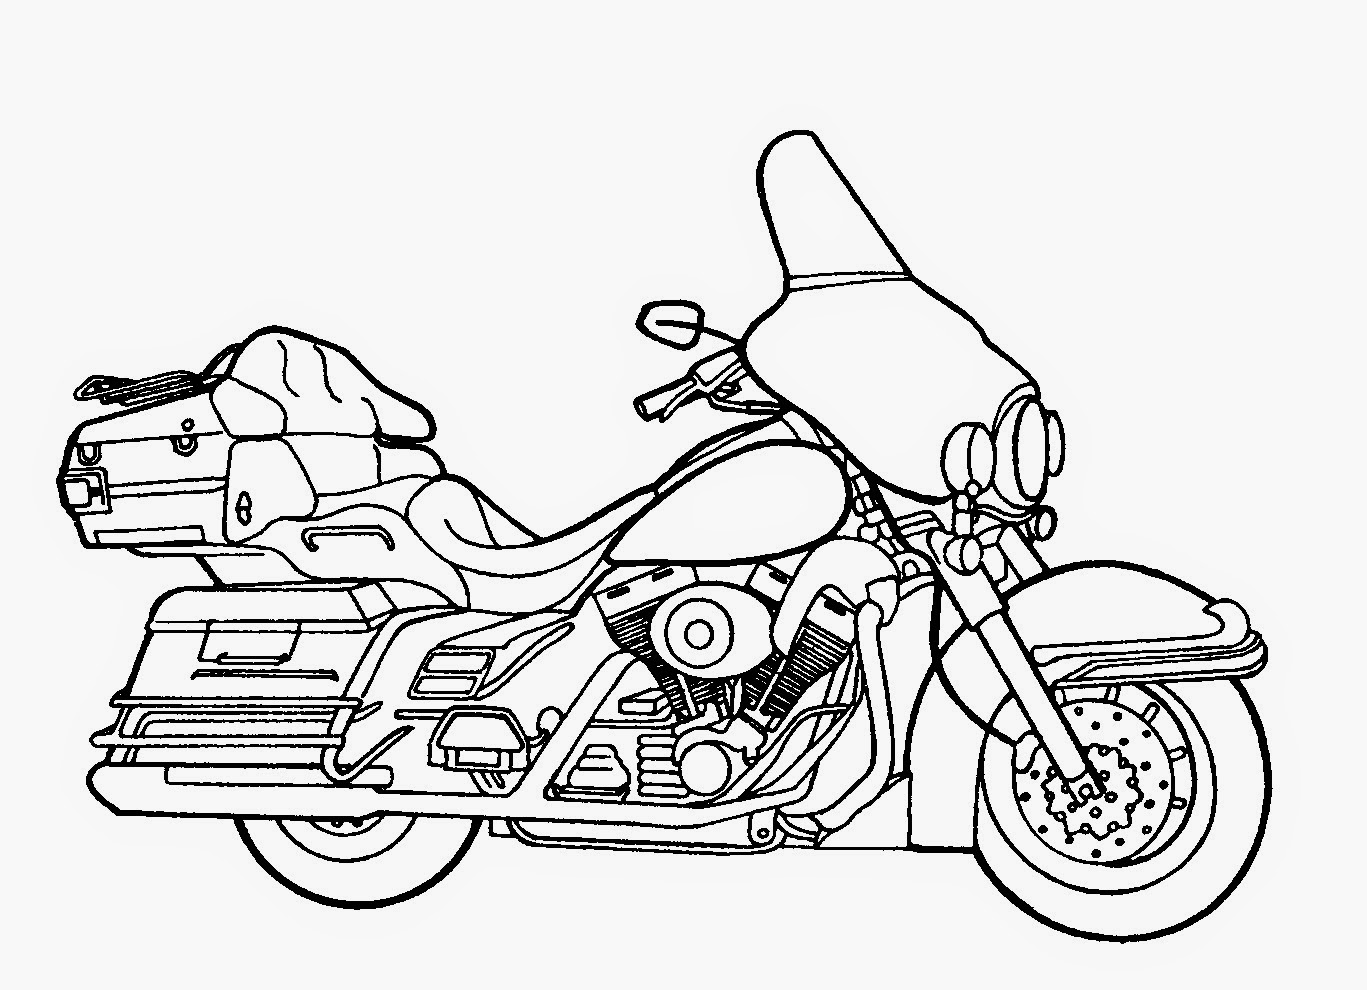 Motorcycle Coloring Page Free wallpaper